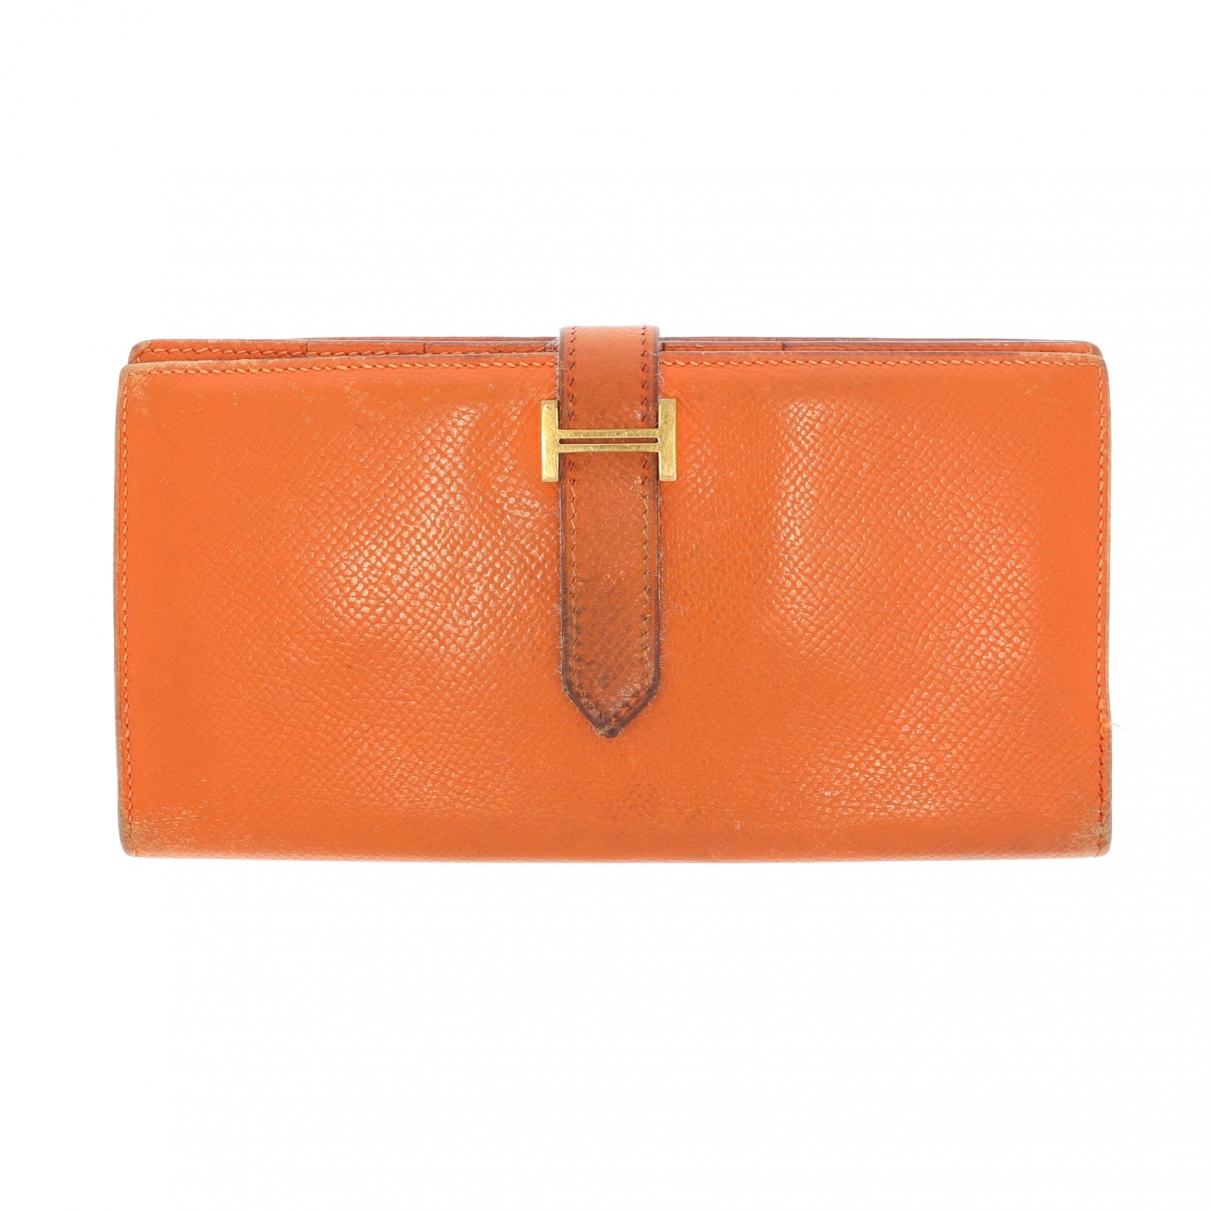 Hermes Bearn Portemonnaie in  Orange Leder